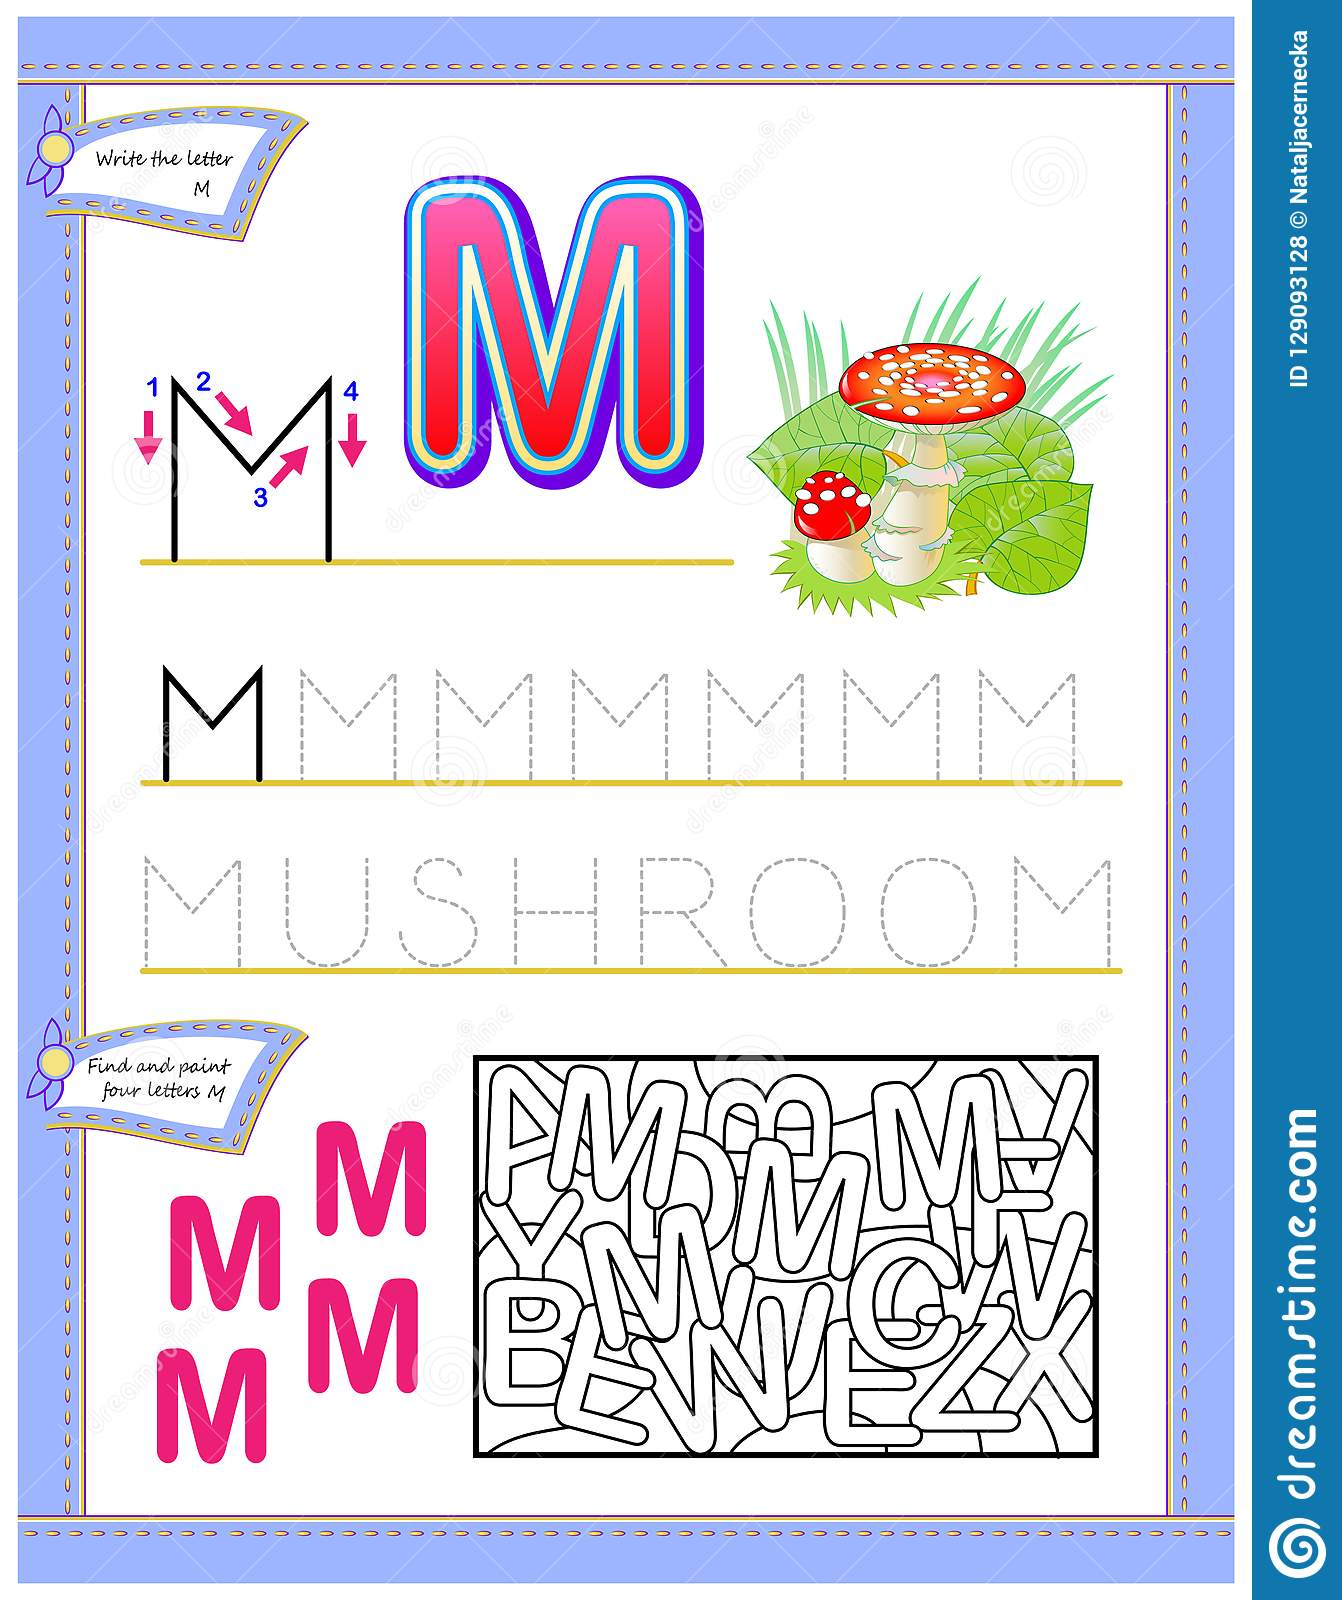 Worksheet For Kids With Letter M For Study English